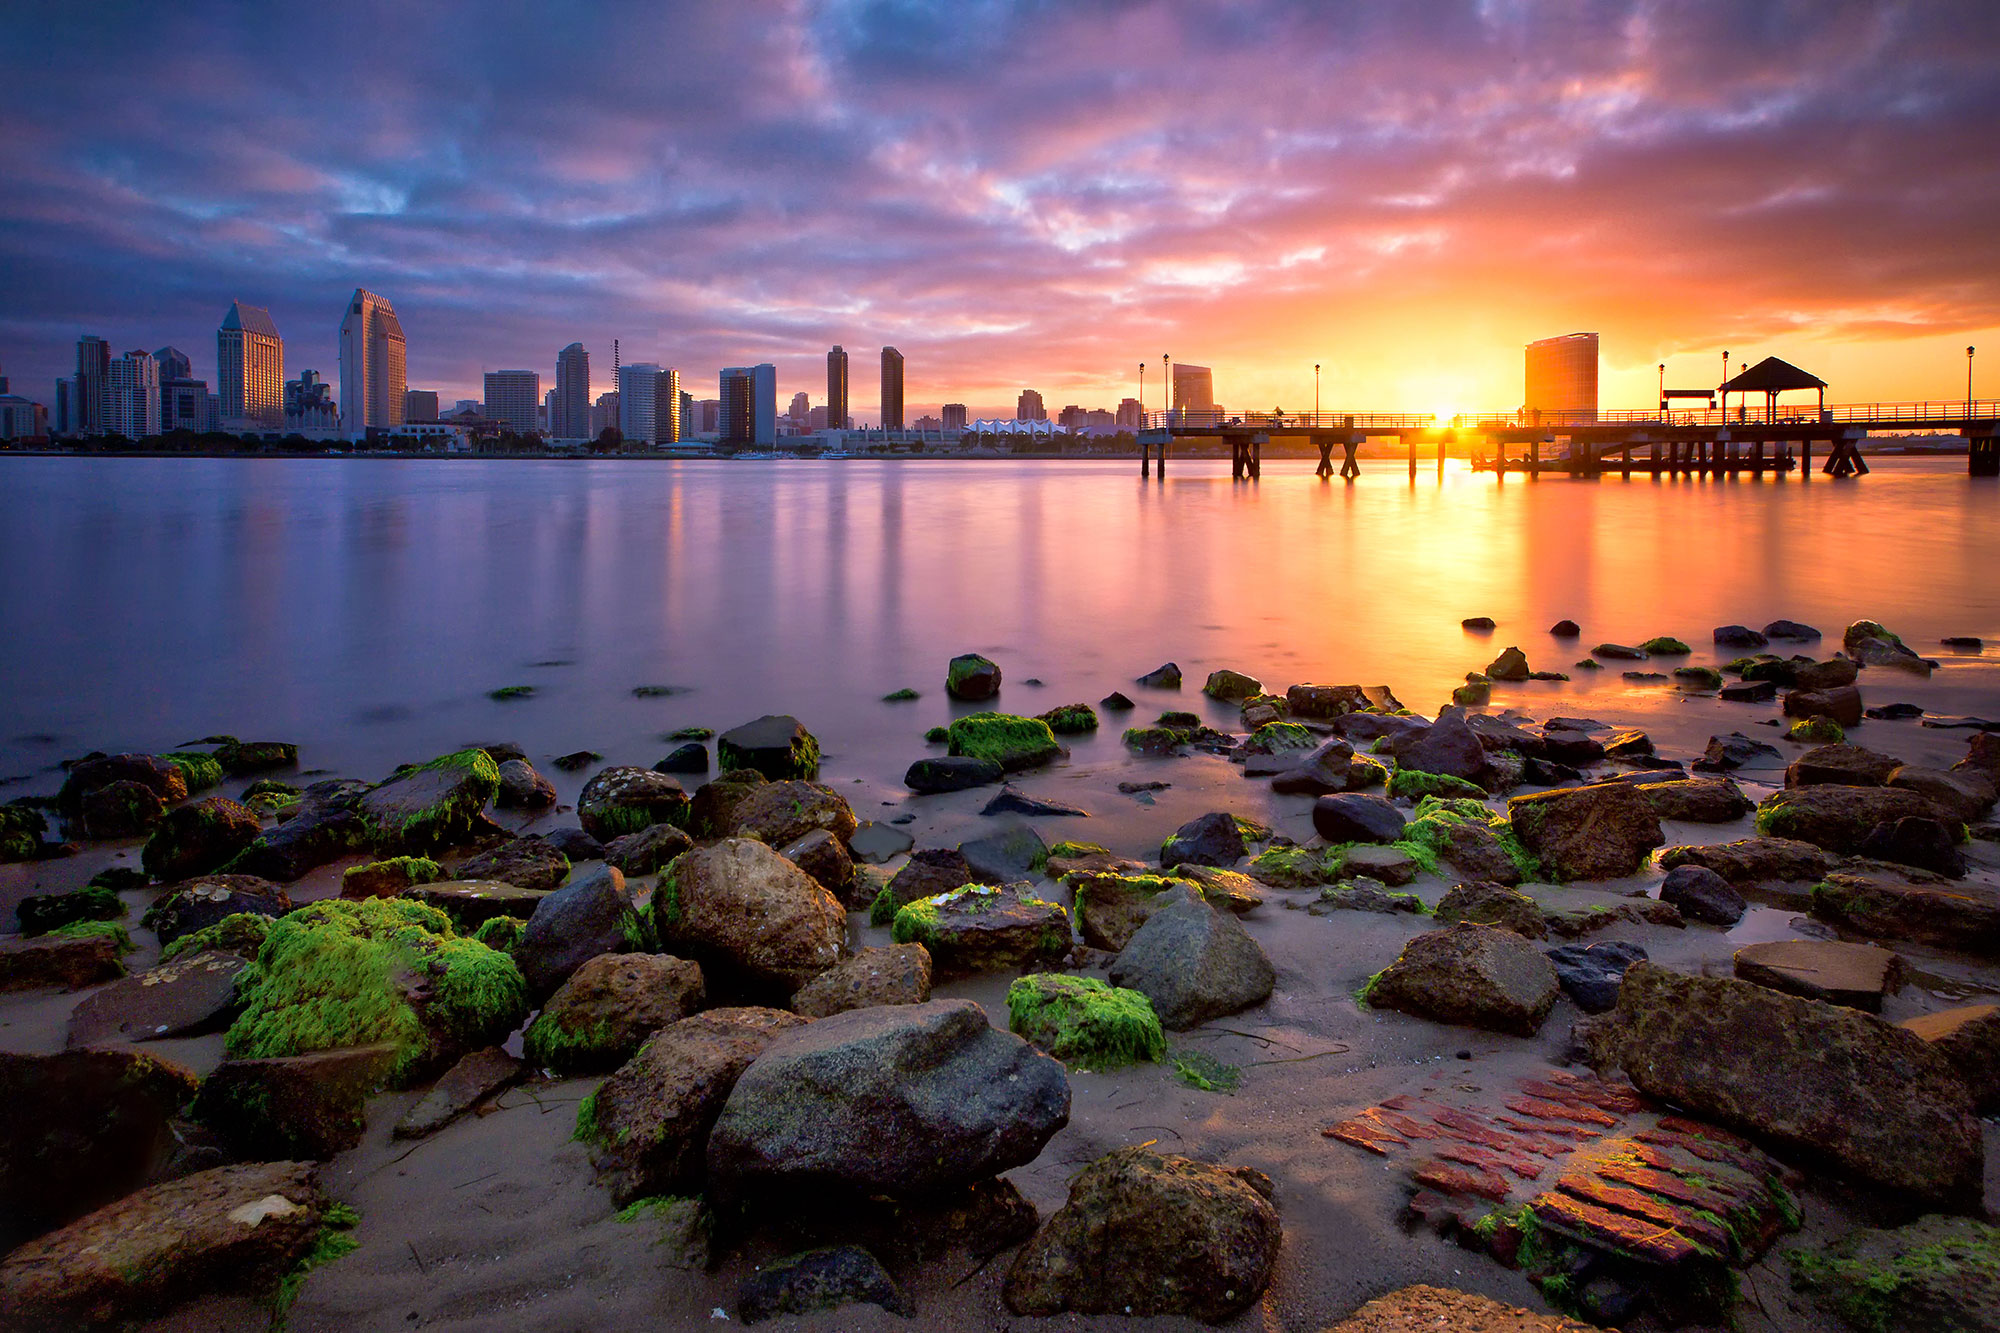 20. San Diego, California